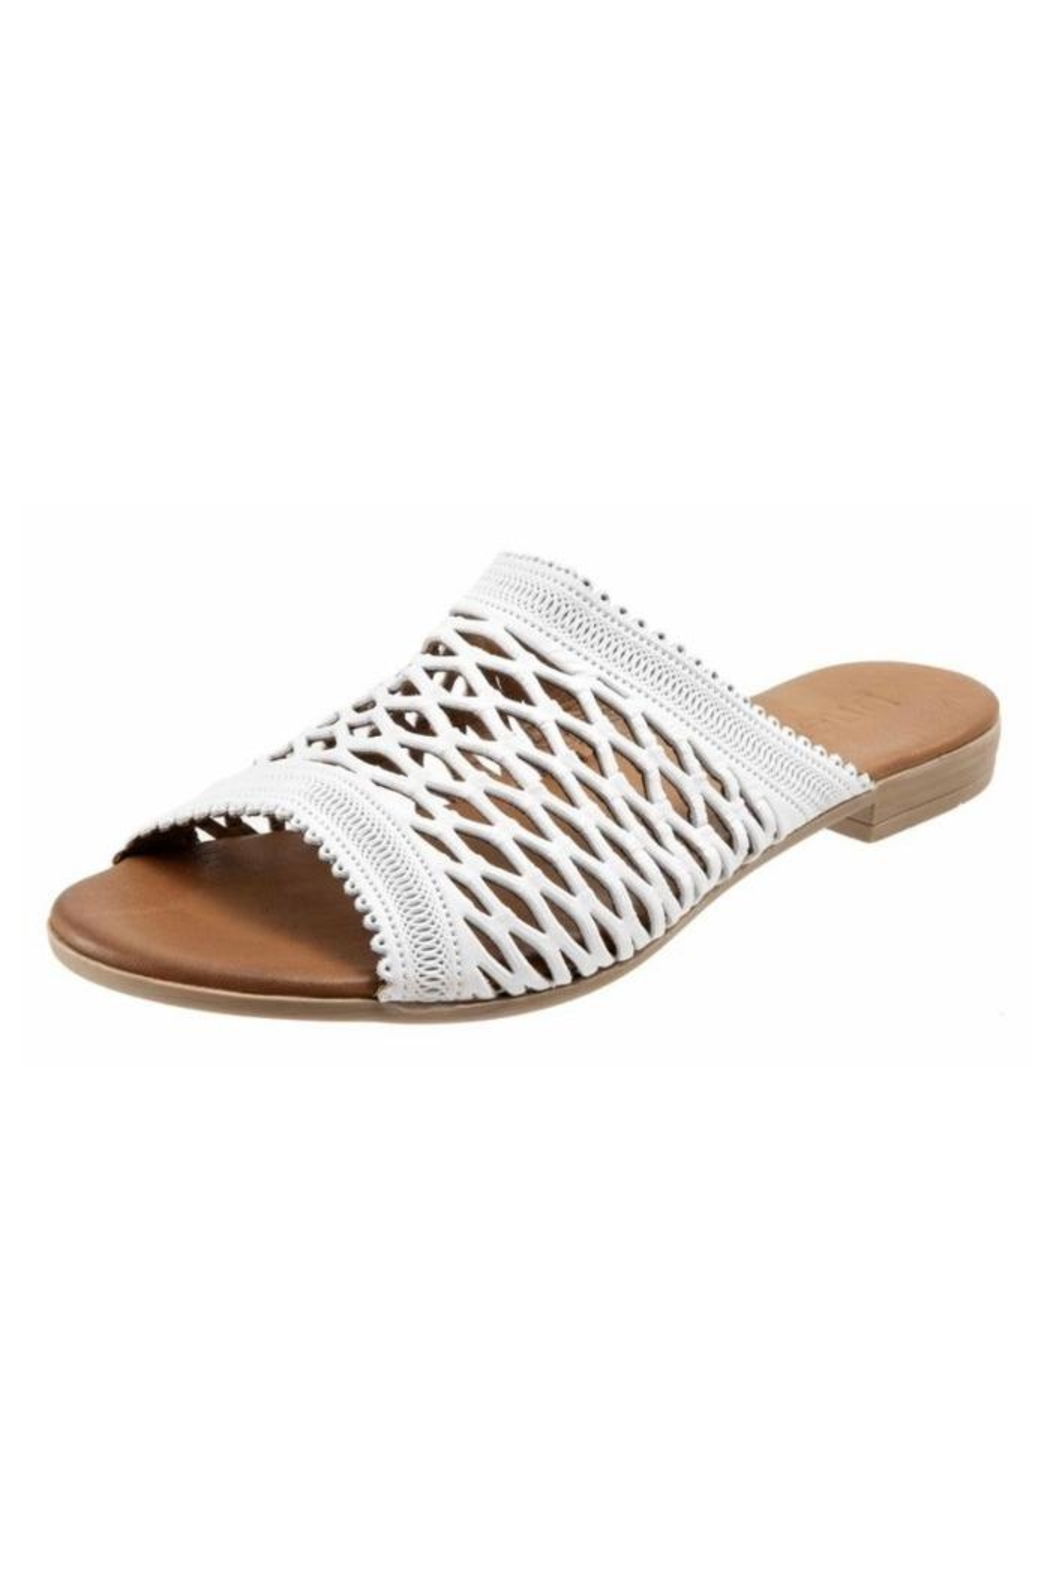 Bueno Shoes Bueno Jenna Sandals - Front Cropped Image